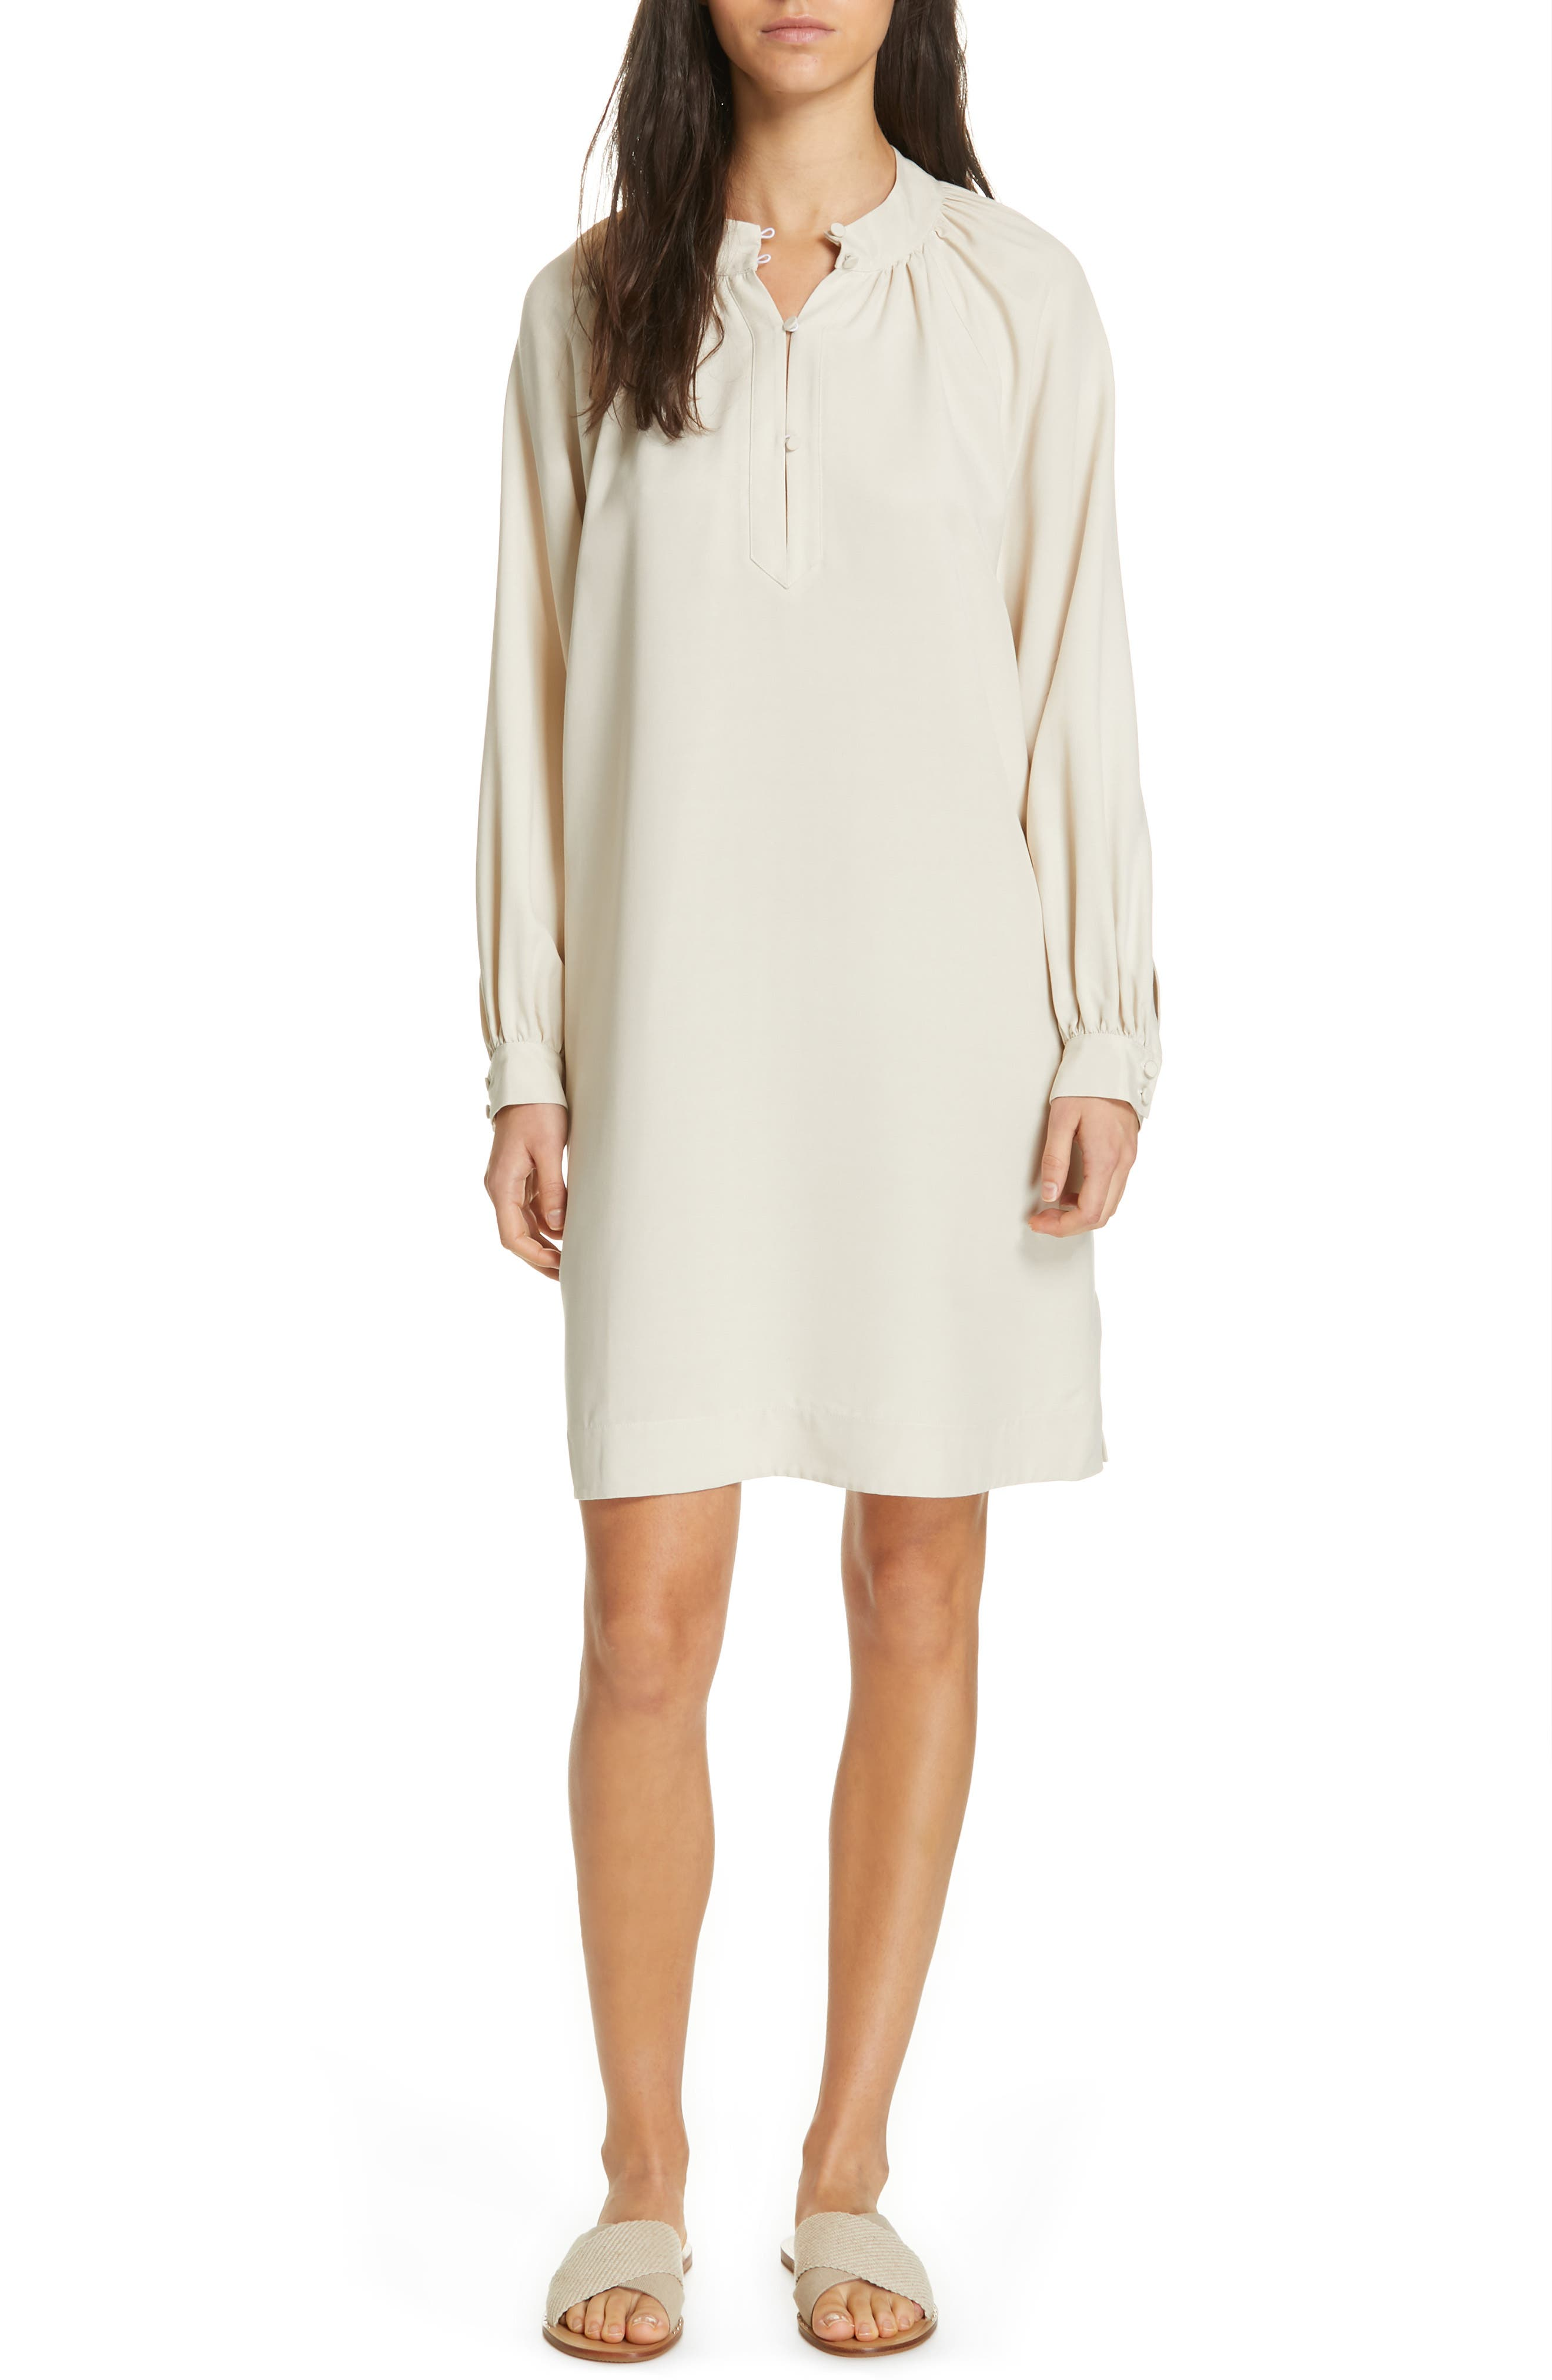 Rodebjer Andriana Dress, Beige